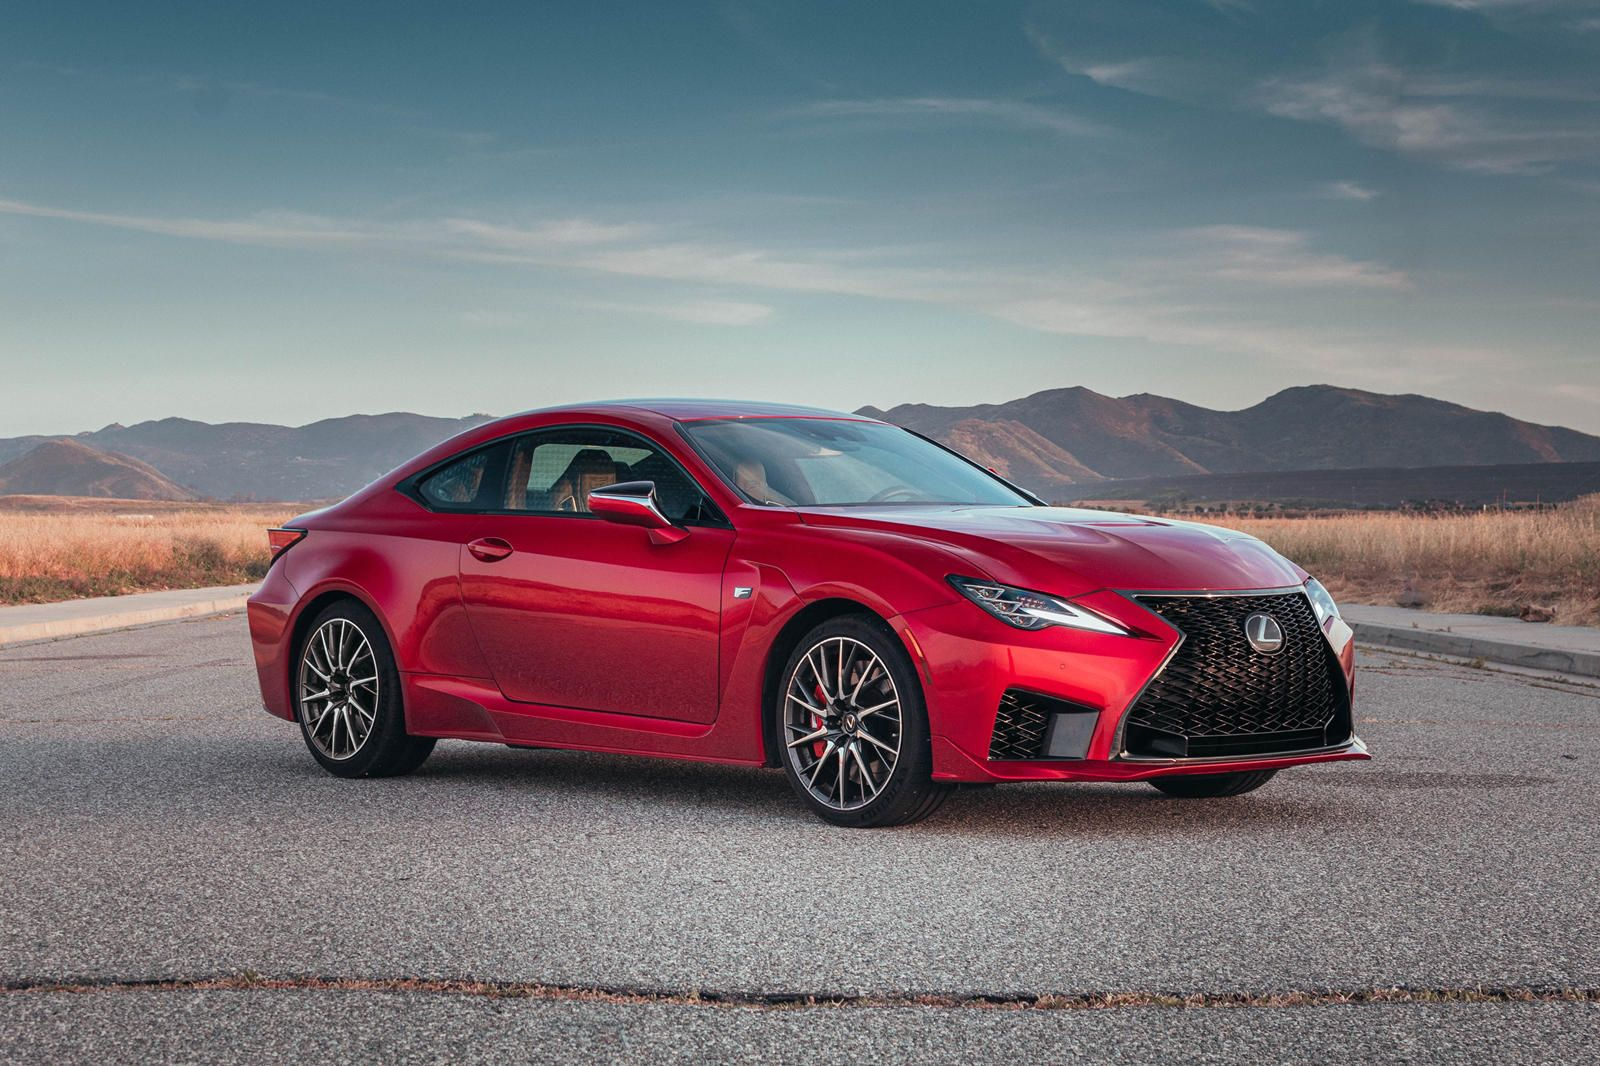 2020 Lexus Rc F Test Drive Review The Art Of Loud Luxury In 2020 Lexus Bmw M4 Coupe New Lexus